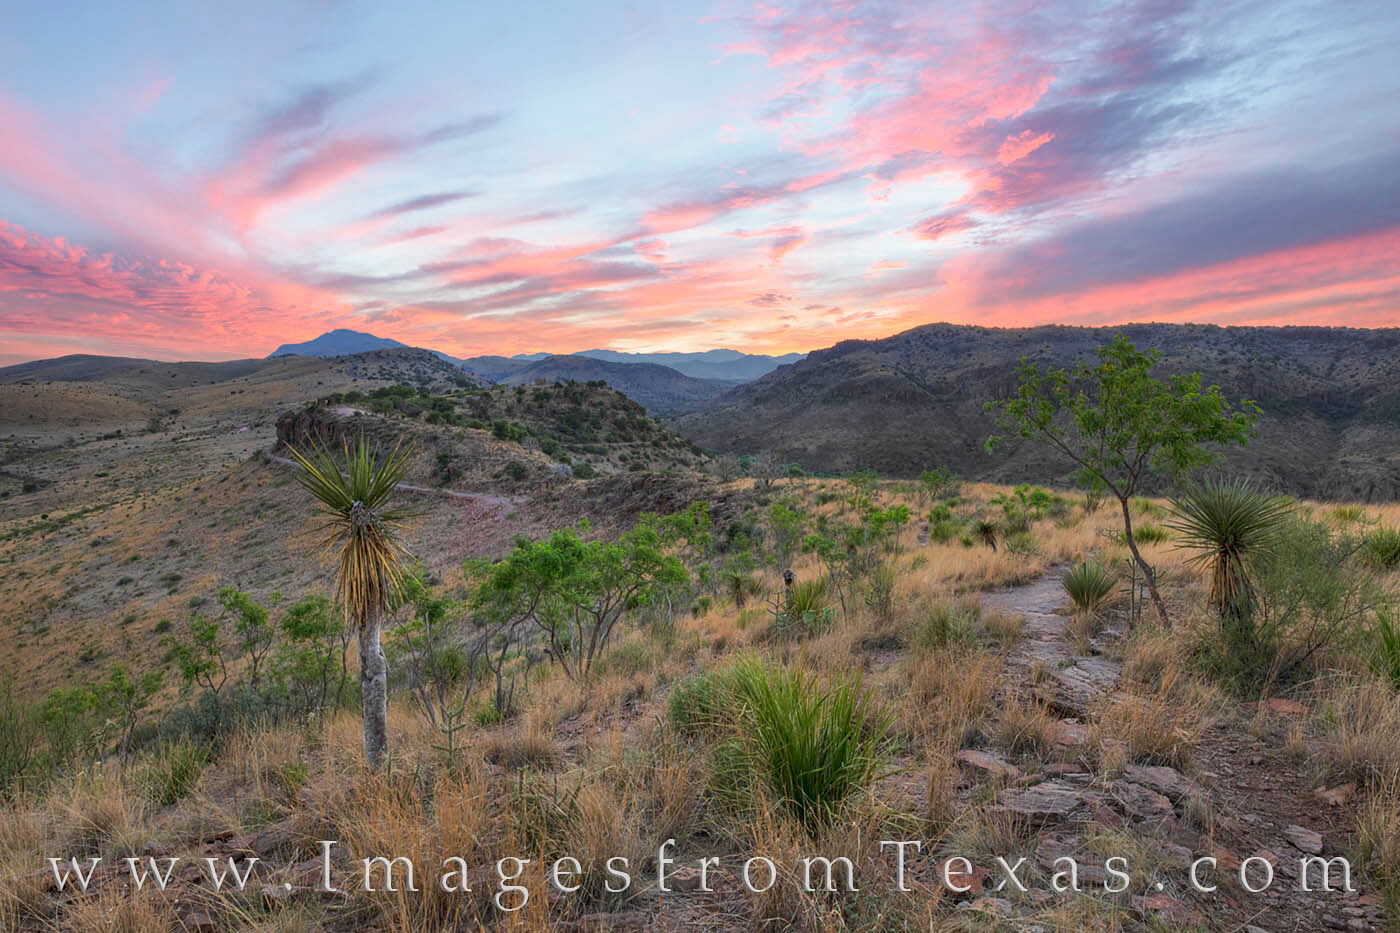 davis mountains, davis mountains state park, davis mountains sunset, fort davis, fort davis images, texas sunsets, texas landscapes, texas photos, davis mountains photos, davis mountains prints, photo